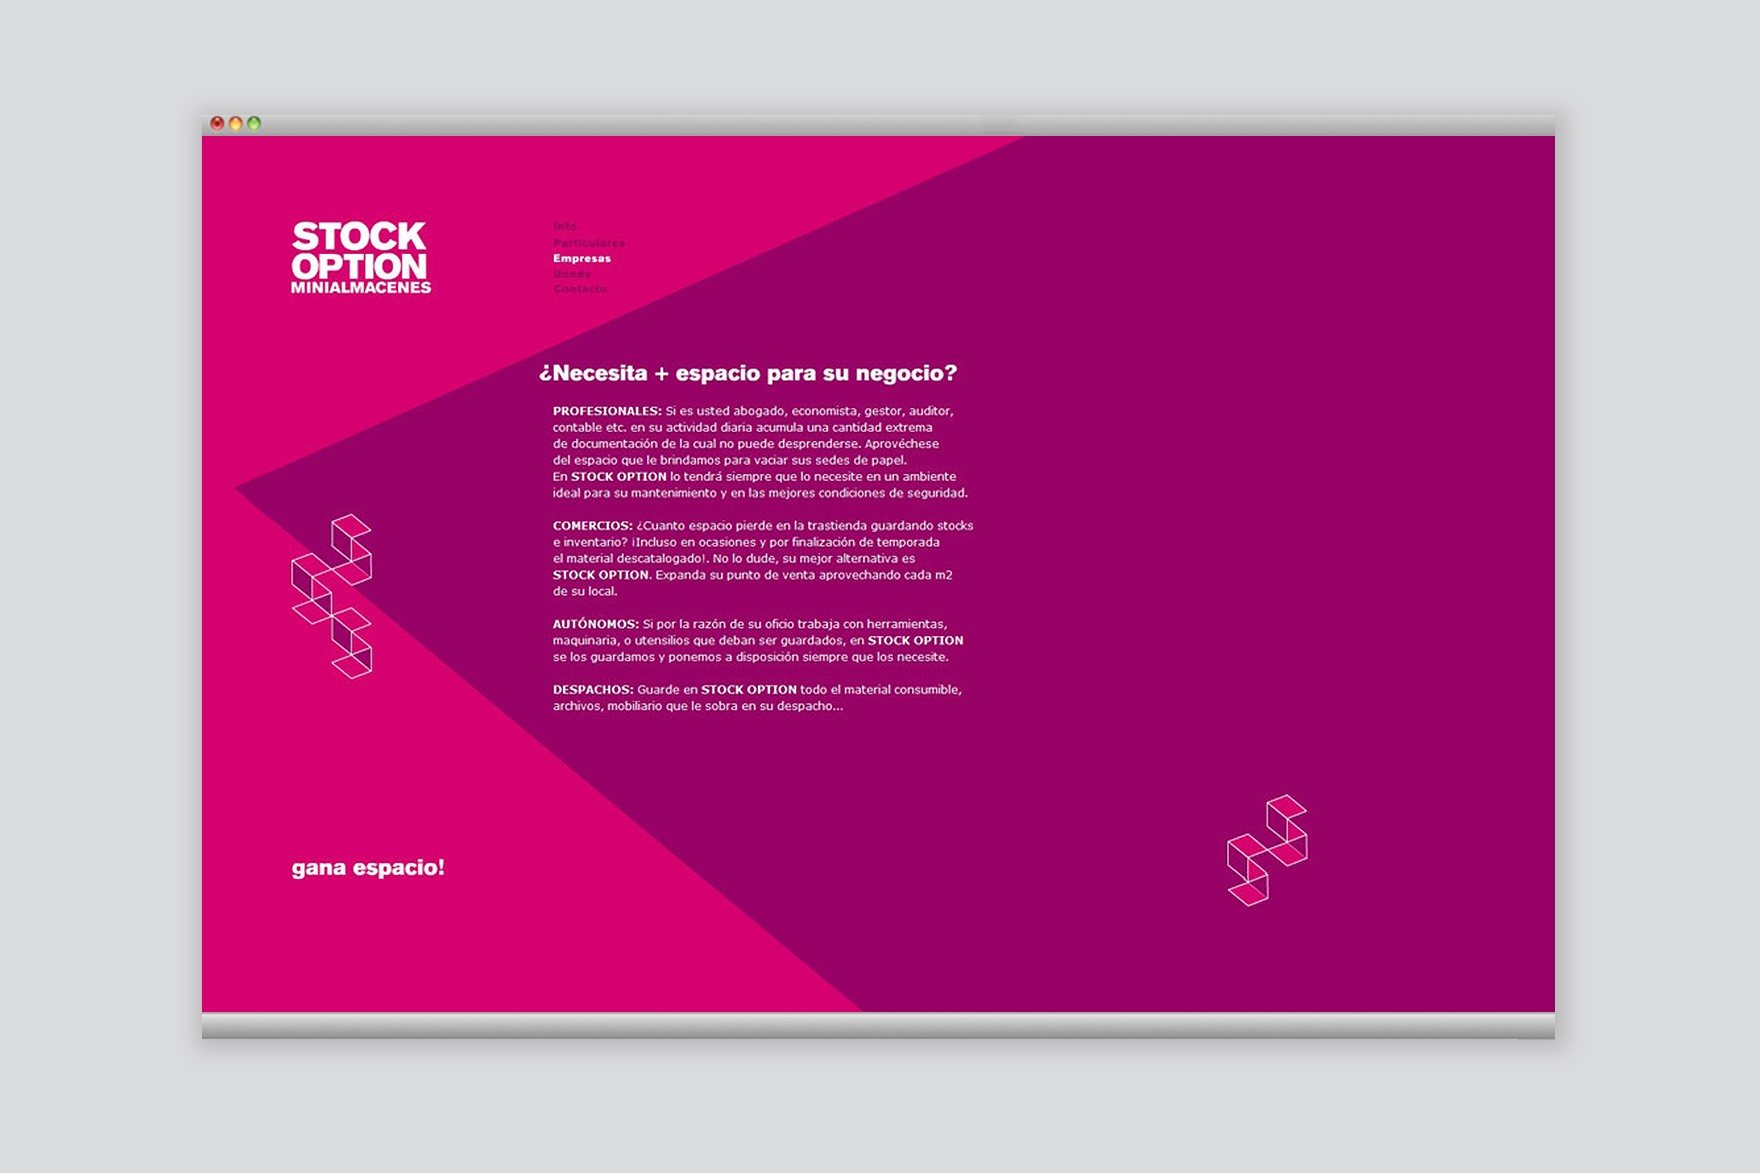 STOCK OPTION / WEB DESIGN